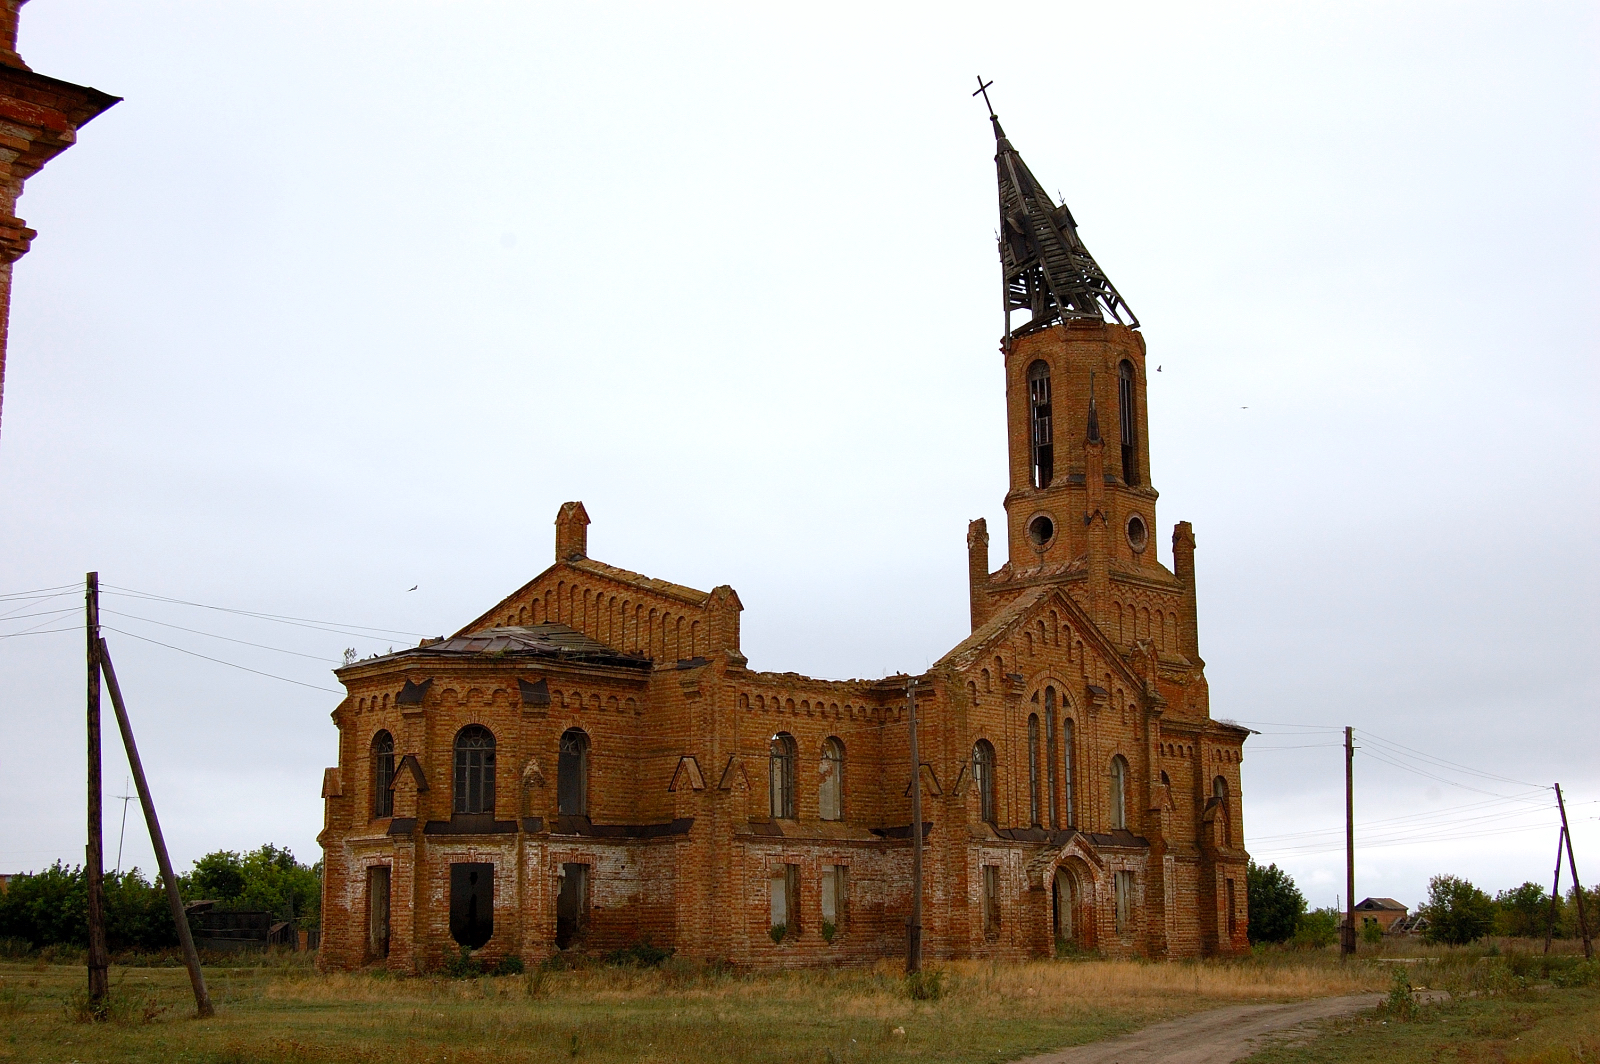 The ruins of the magnificent church in Messer. Source: Steve Schreiber (2006).